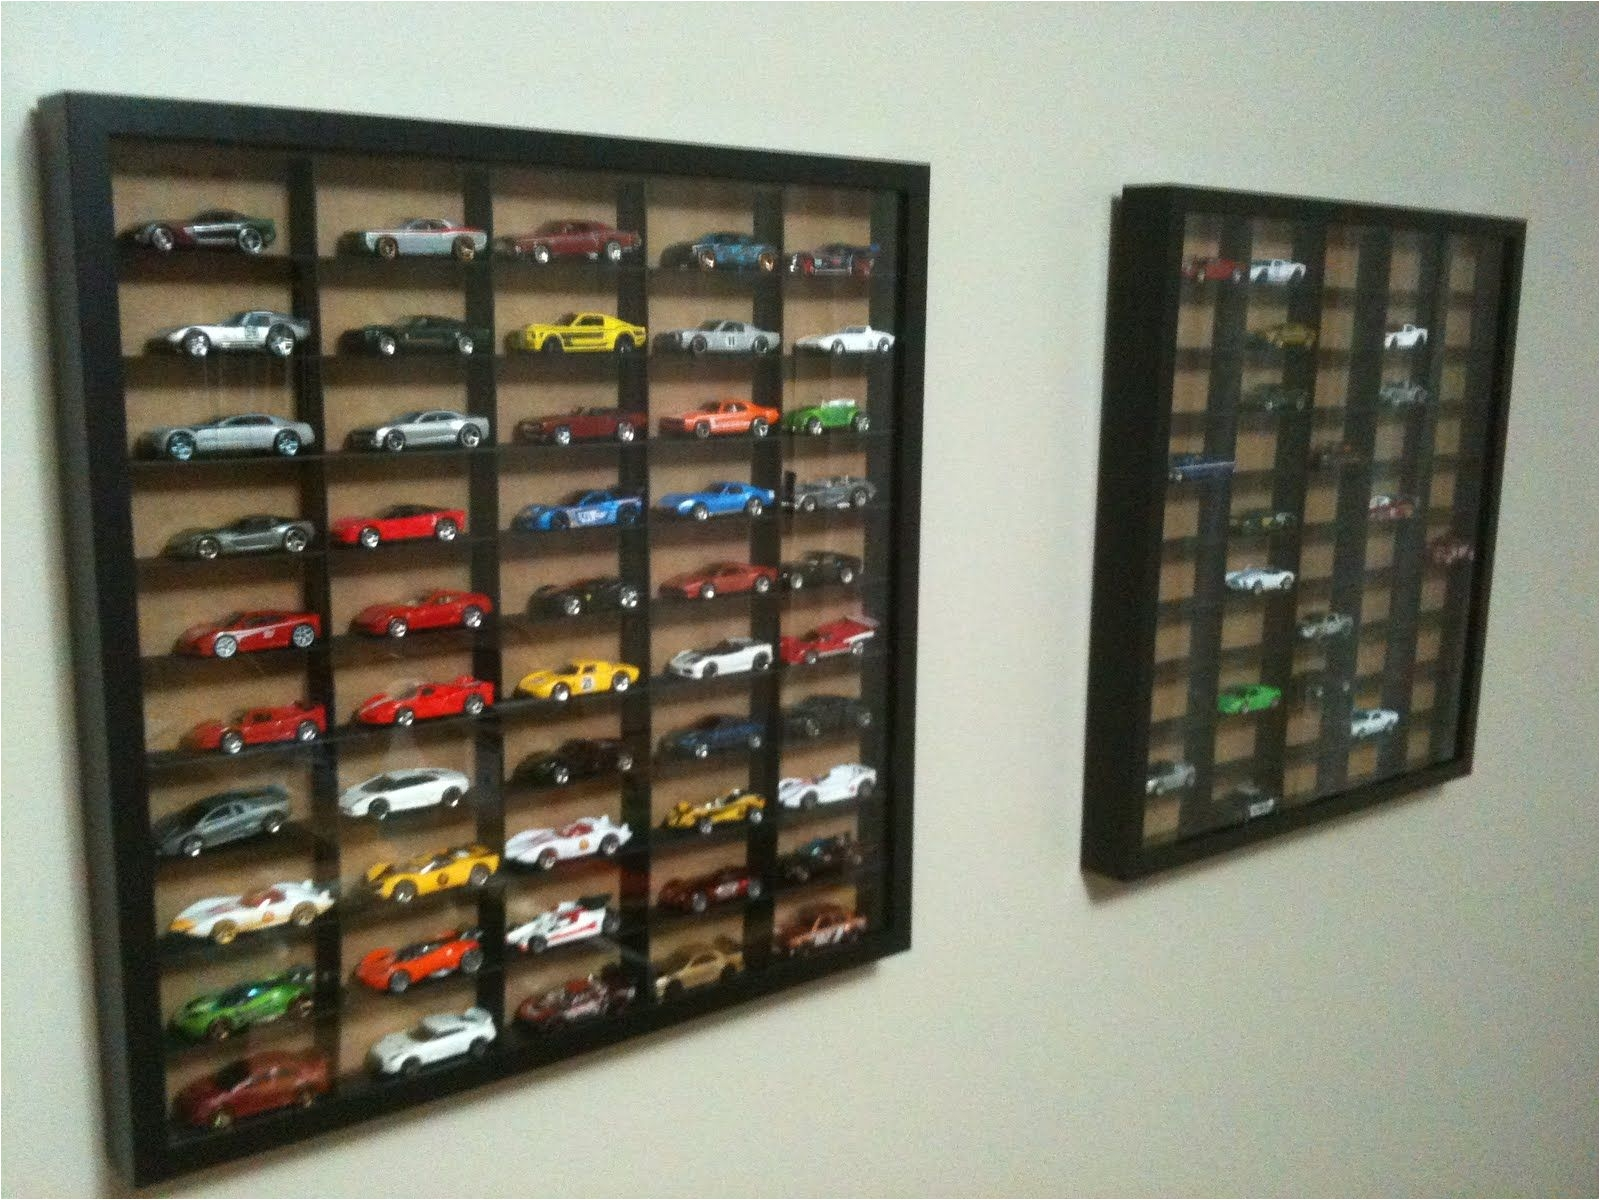 hot wheels display case ikea hackers ribba hot wheels display case